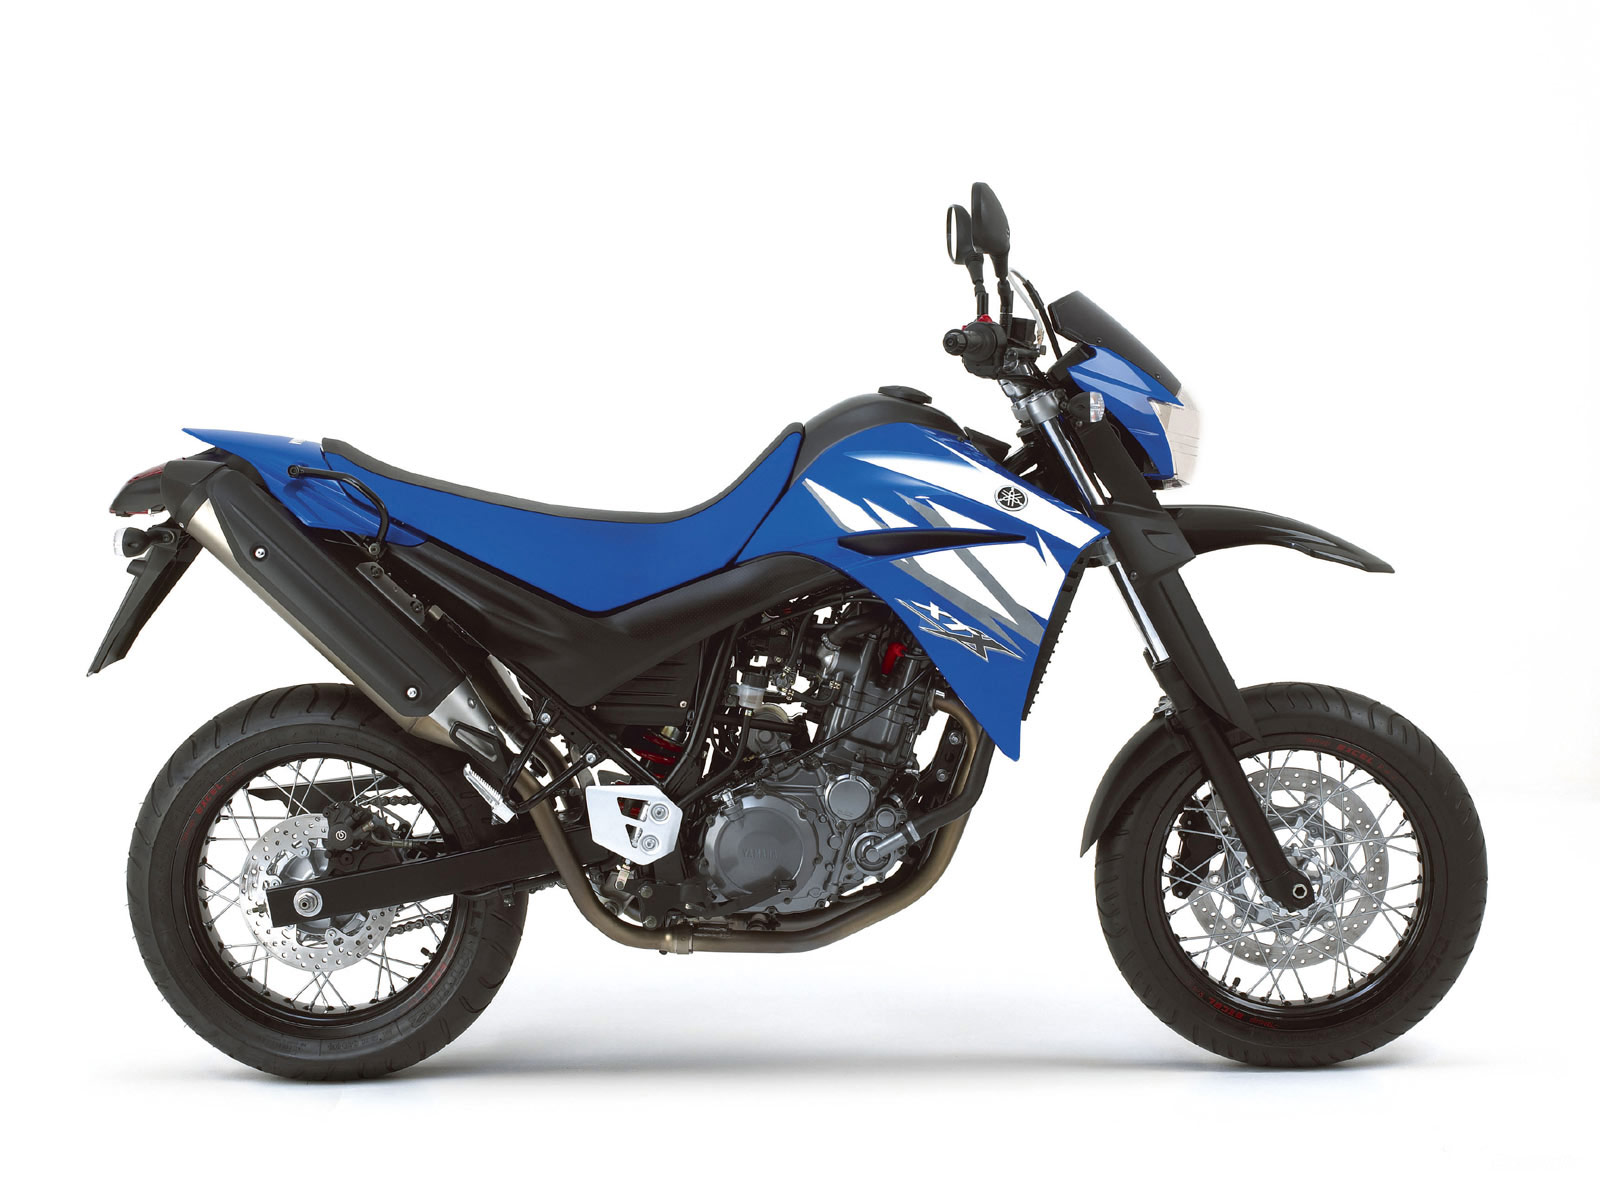 2006 yamaha xt660x motorcycle pictures specifications. Black Bedroom Furniture Sets. Home Design Ideas